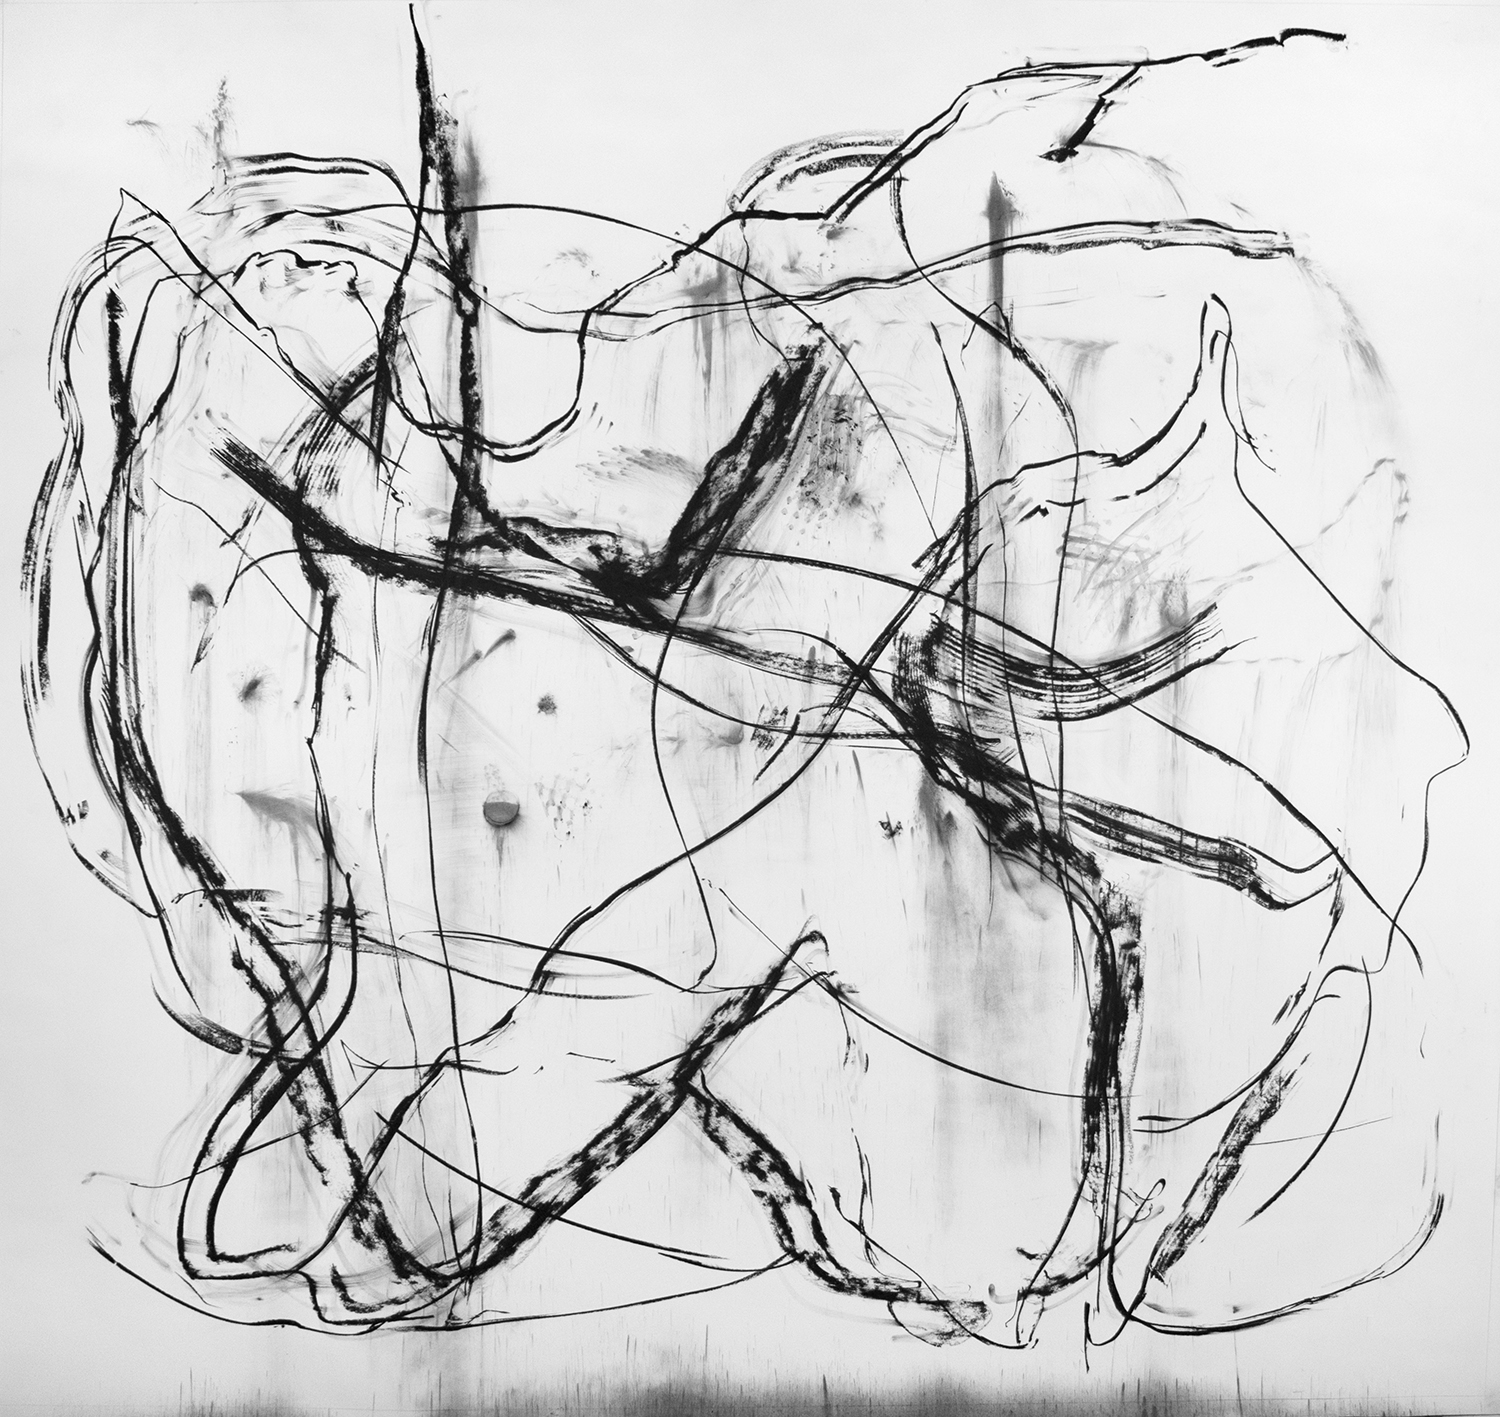 Untitled, 2016, Charcoal on paper, 120 x 153 in.